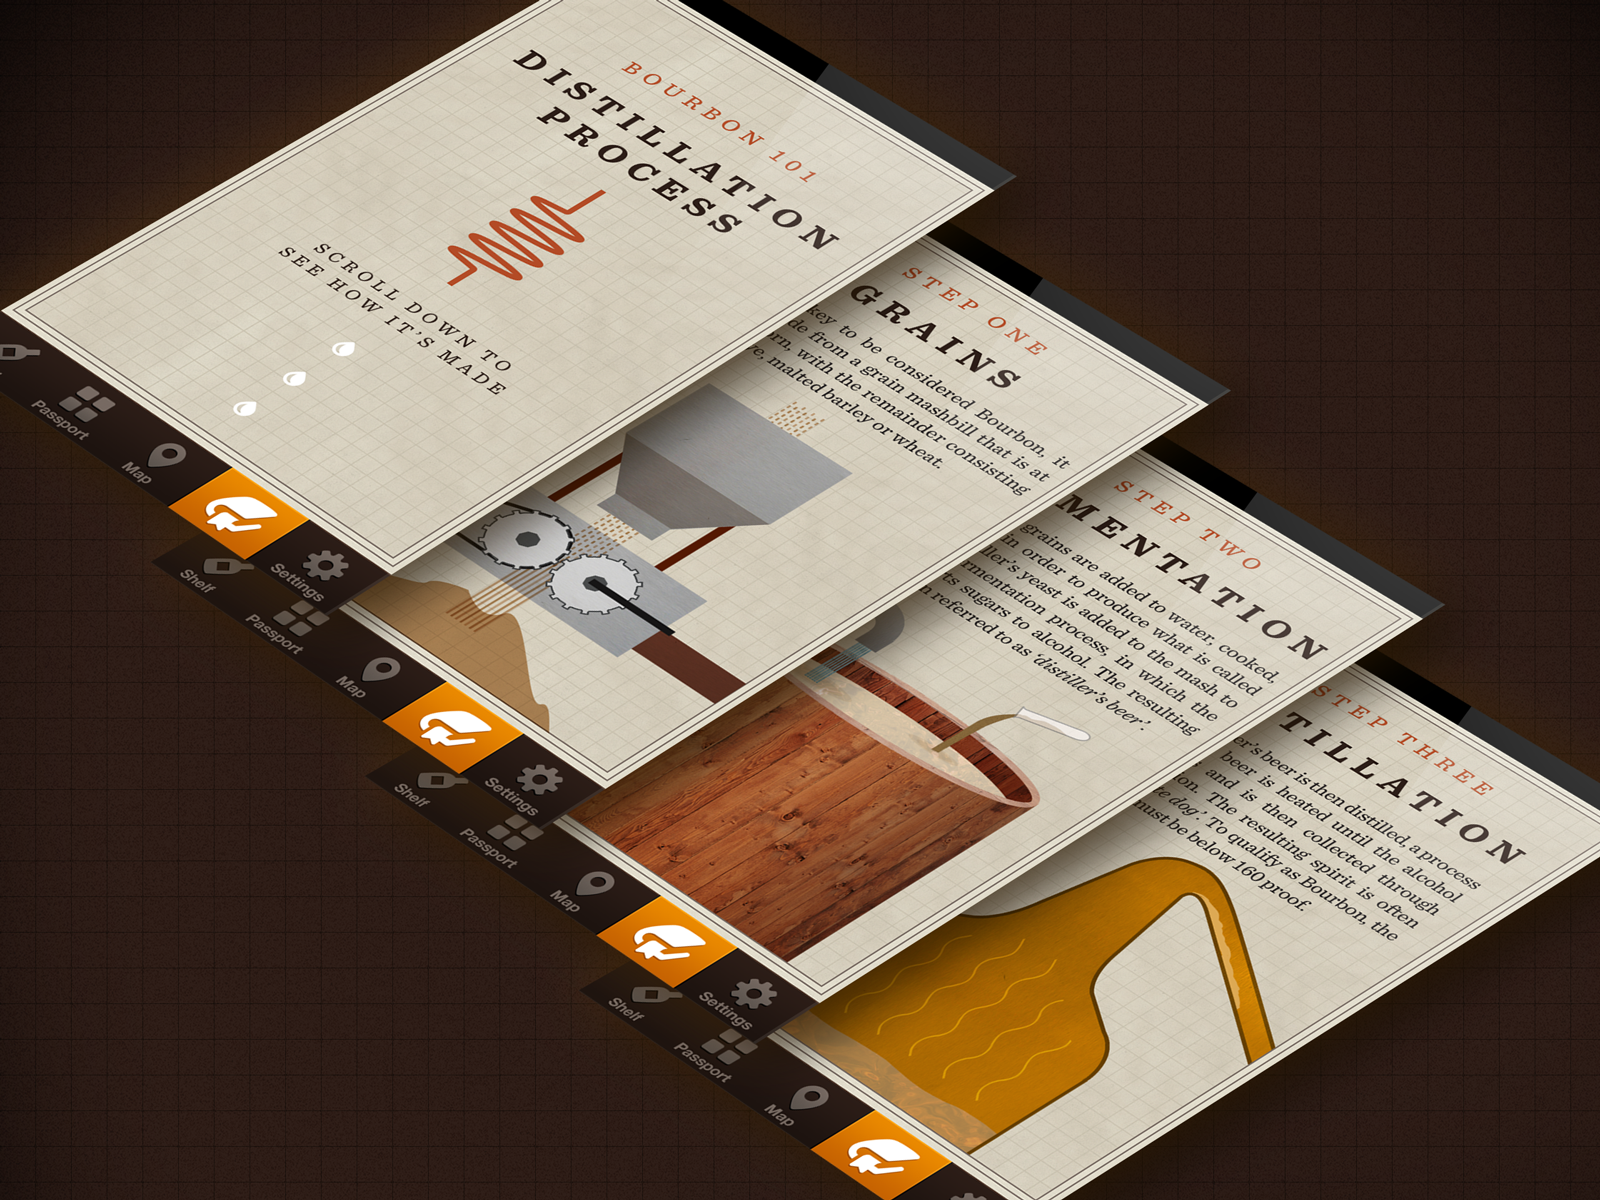 Robby davis projects kentucky bourbon trail app dribbble for Ky bourbon trail craft tour map